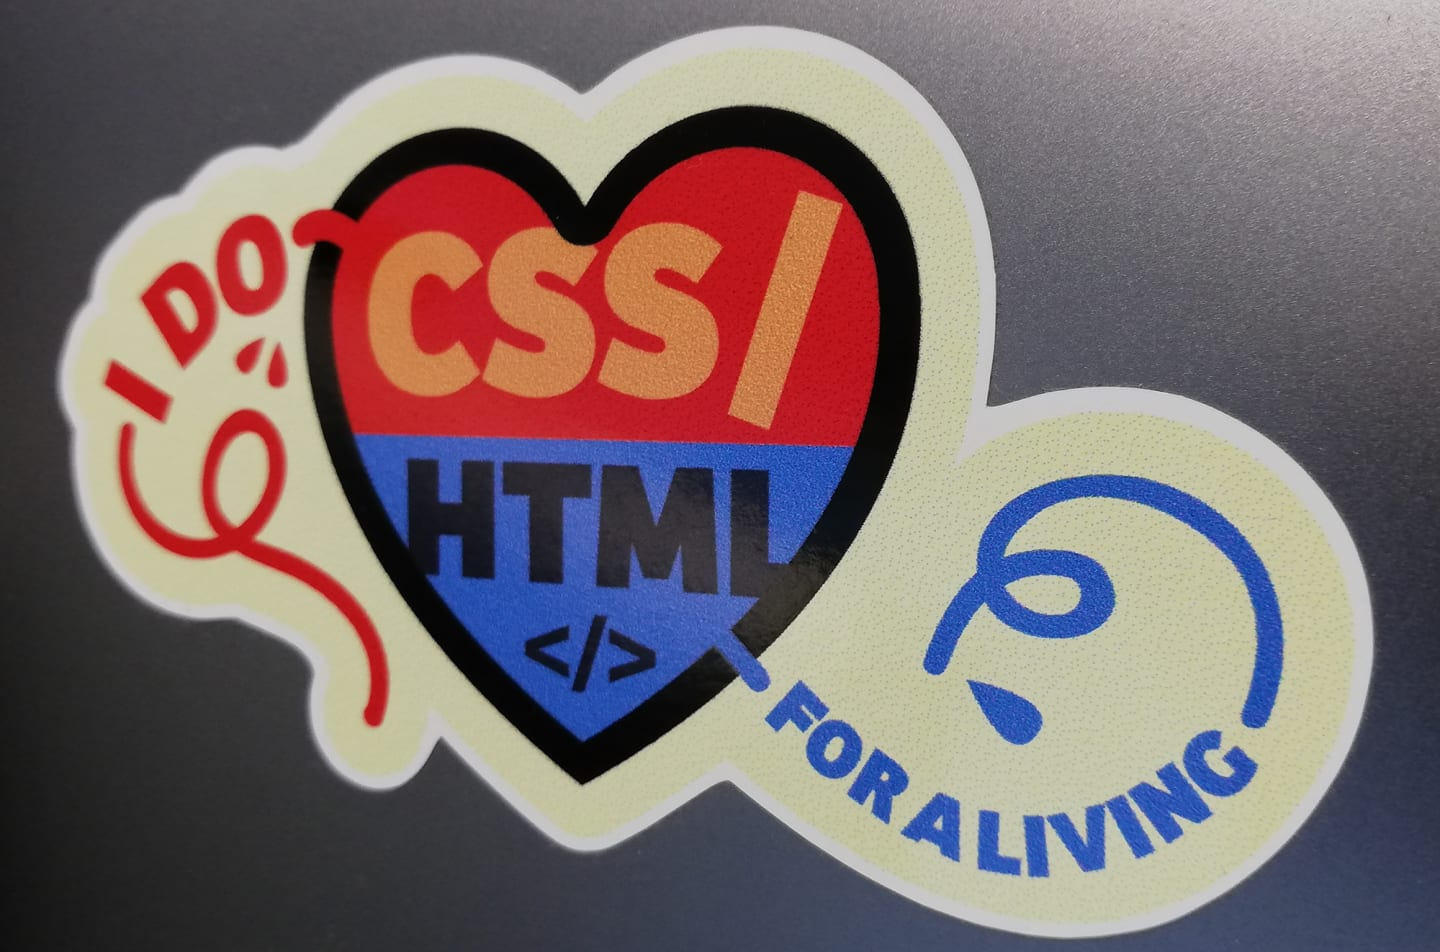 I do CSS and HTML for a living sticker.